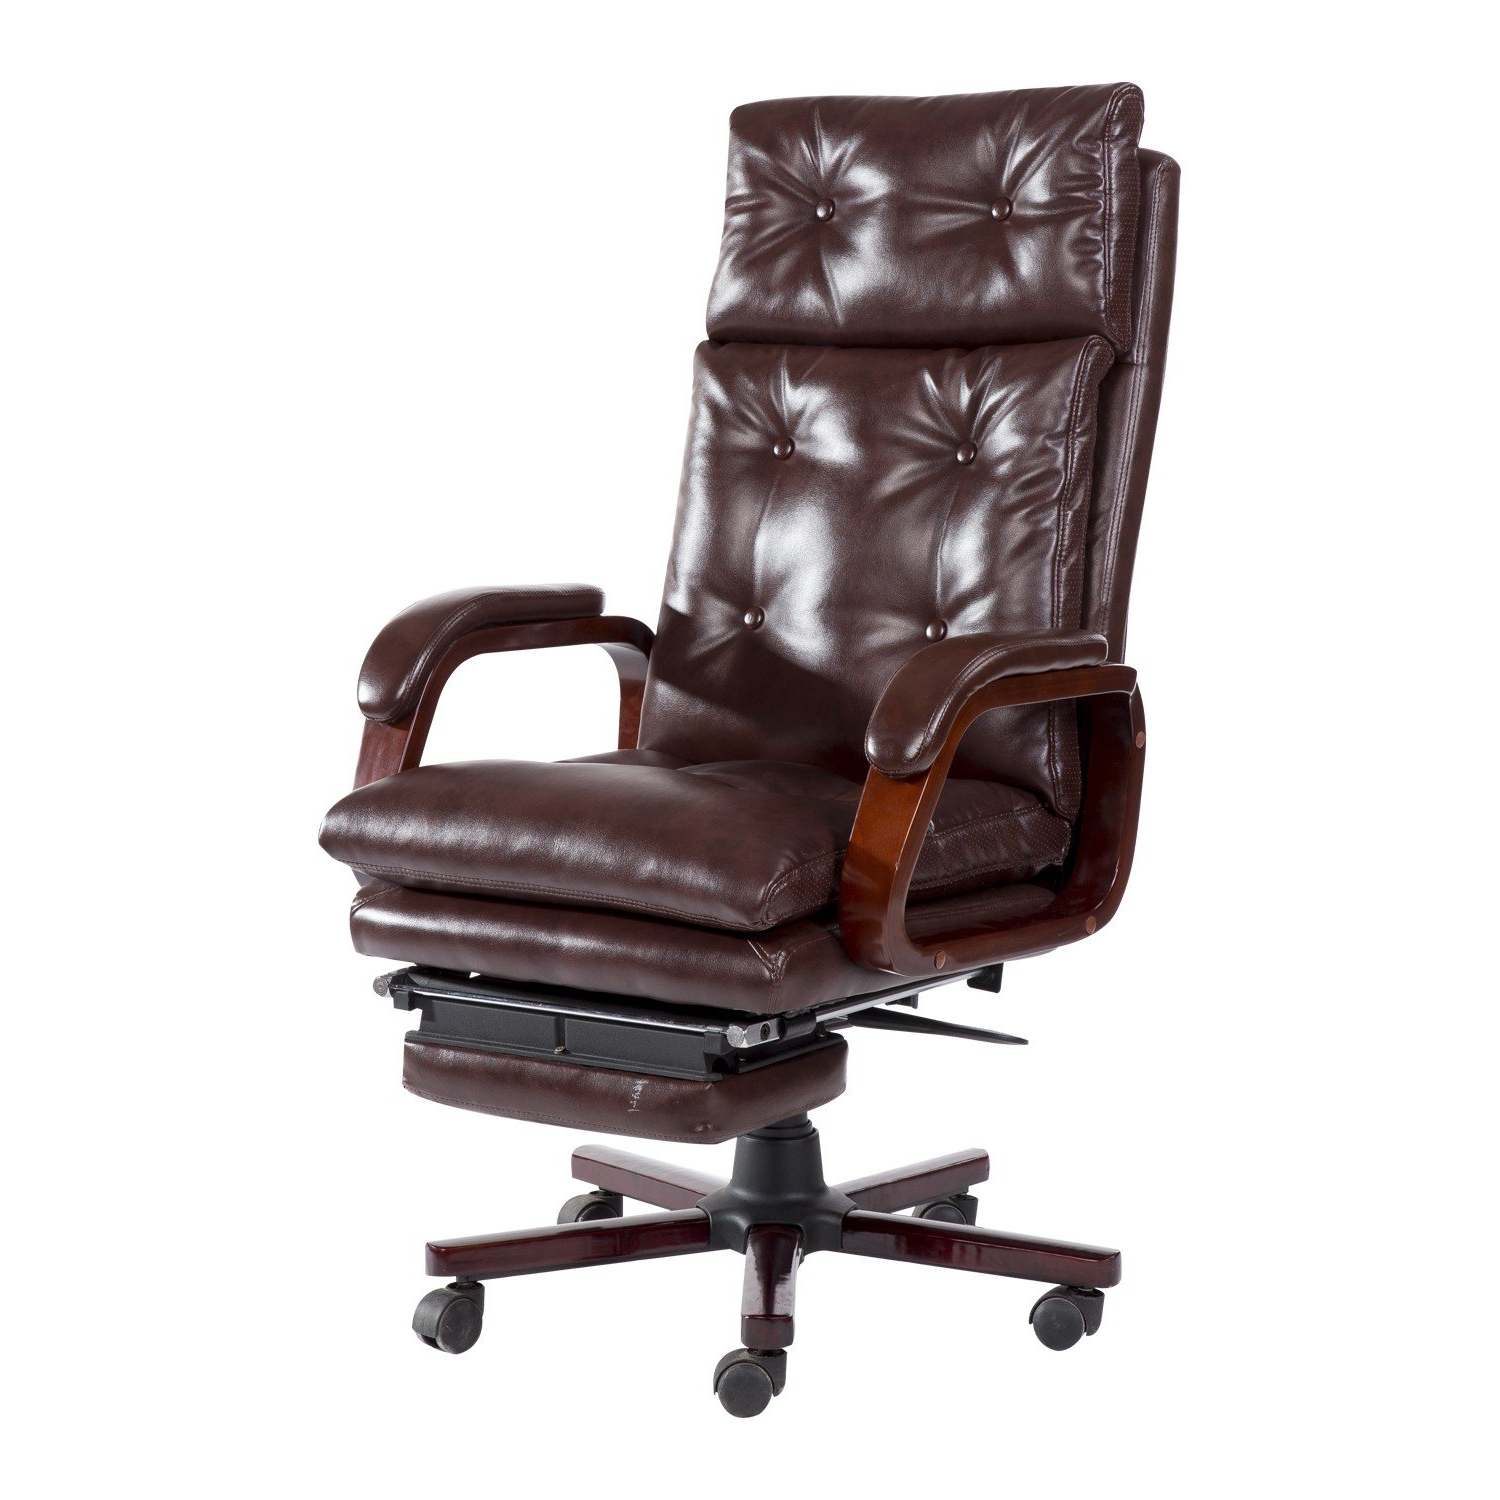 Executive Office Chairs With Leg Rest In Trendy Homcom High Back Pu Leather Executive Reclining Office Chair With (View 18 of 20)